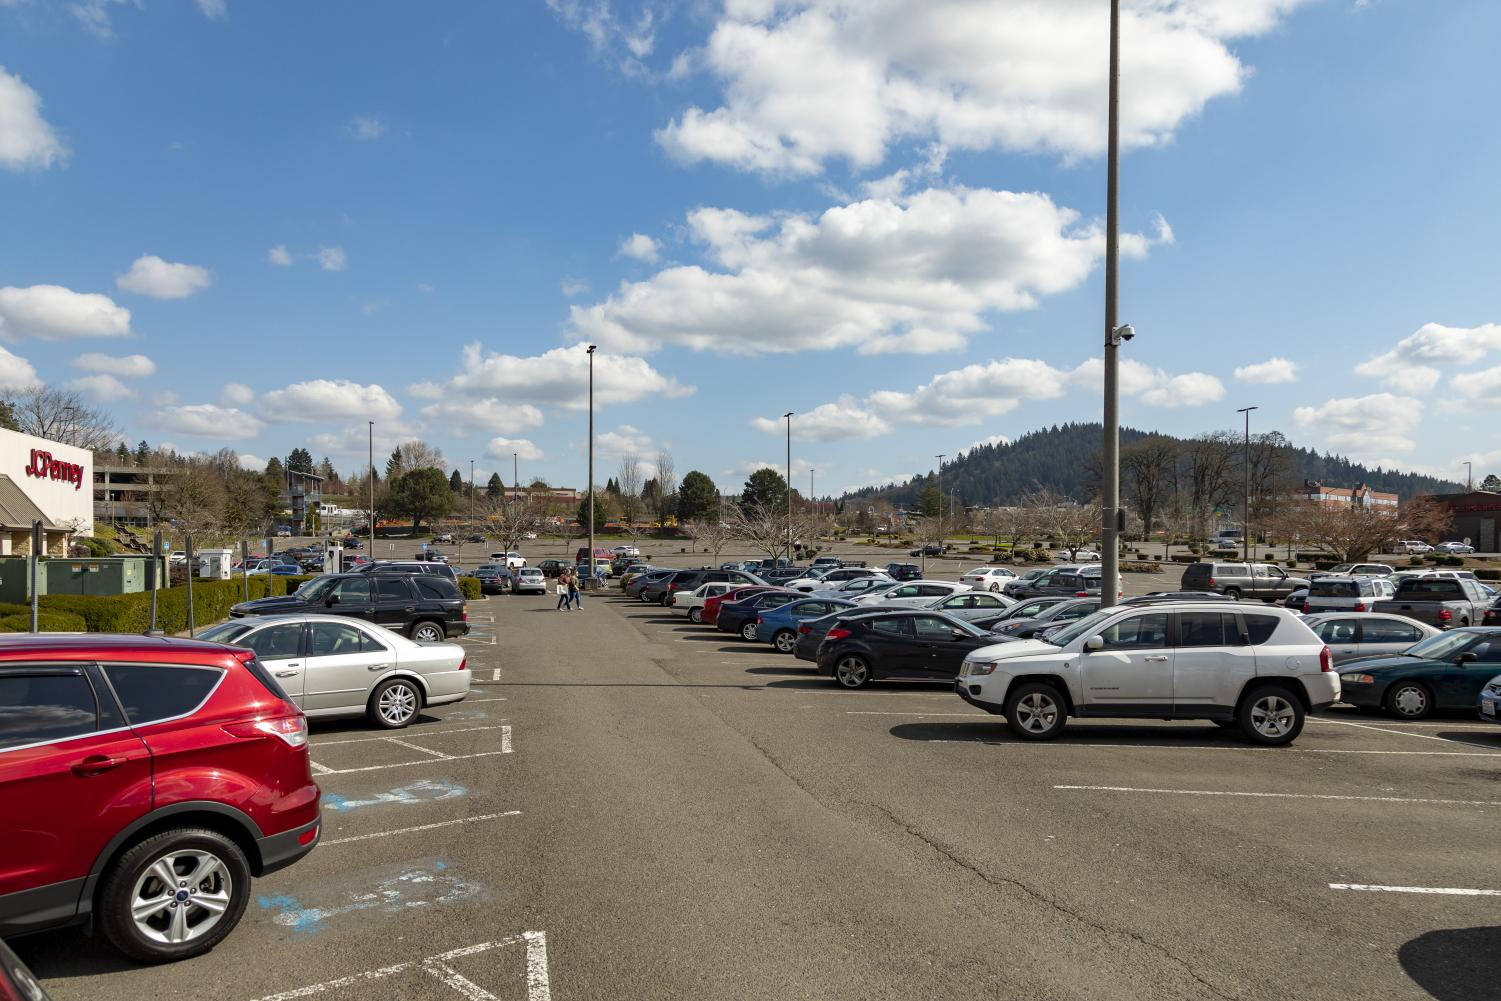 The+usually+bustling+Clackamas+Town+Center+parking+lot%2C+which+can+hold+as+many+as+6%2C800+cars%2C+now+sits+mostly+deserted%2C+with+only+the+first+few+rows+occupied.+